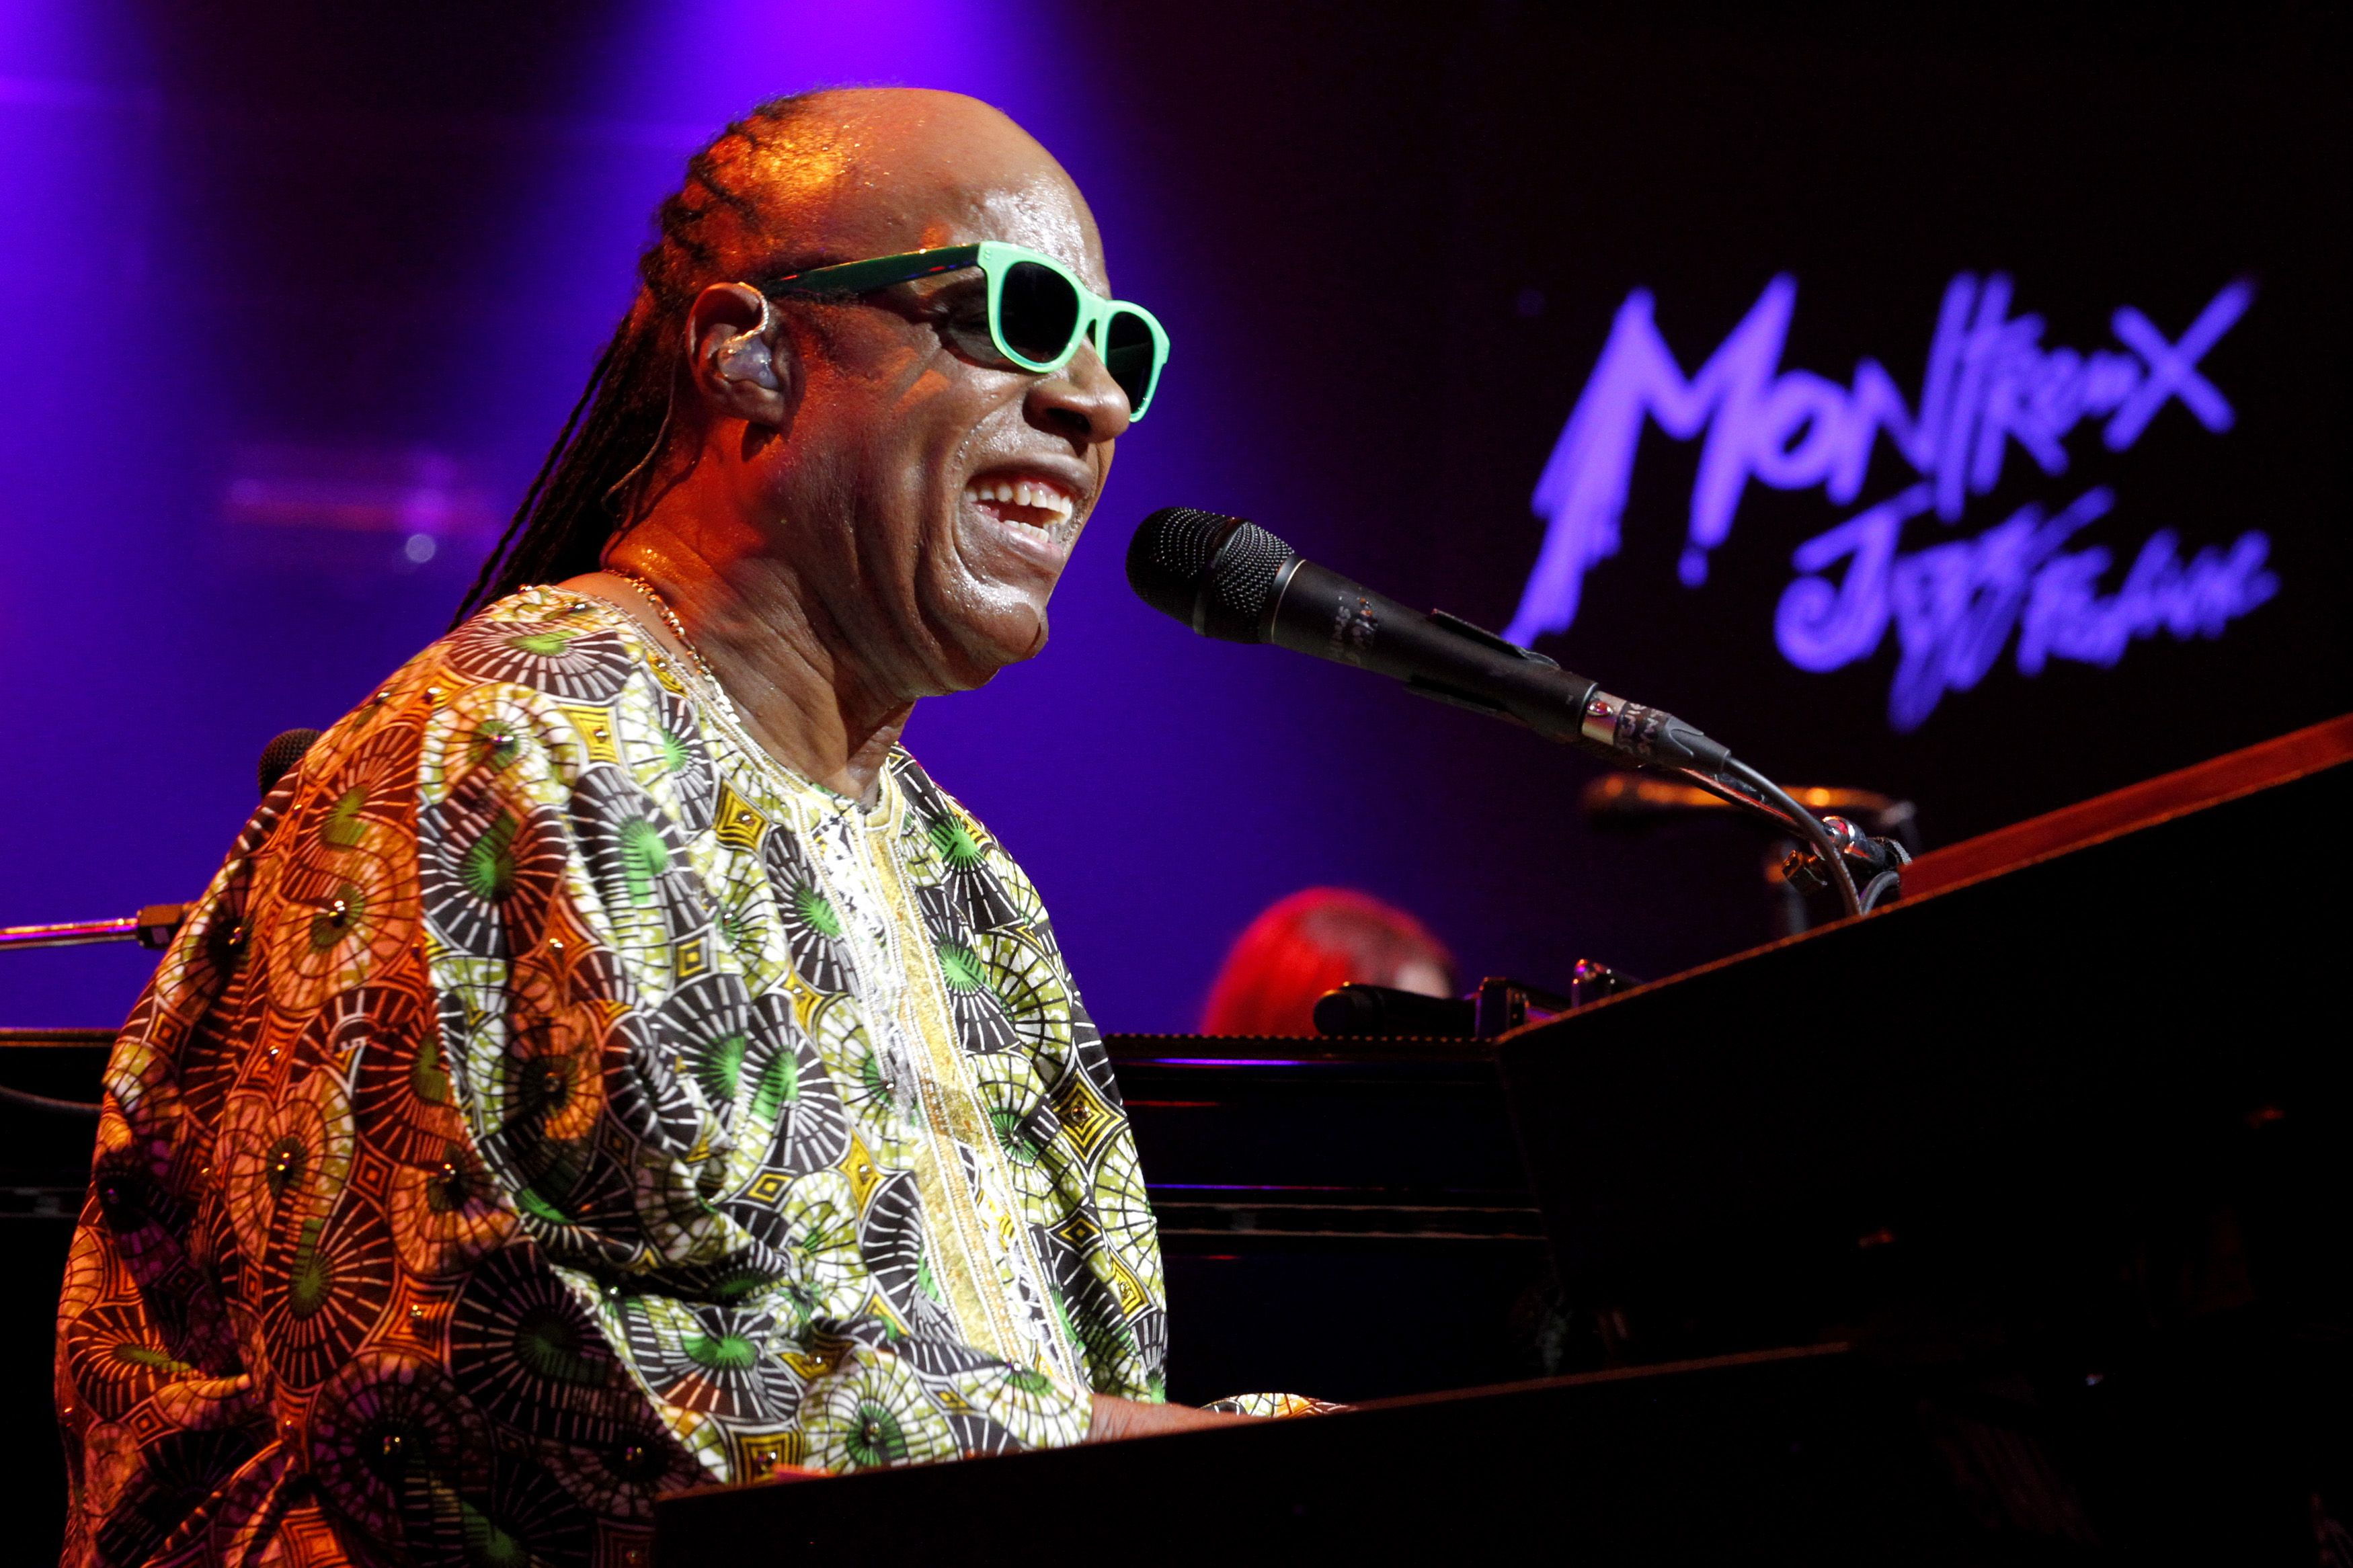 Download New 3d Wallpapers For Pc Stevie Wonder Wallpapers Pictures Images